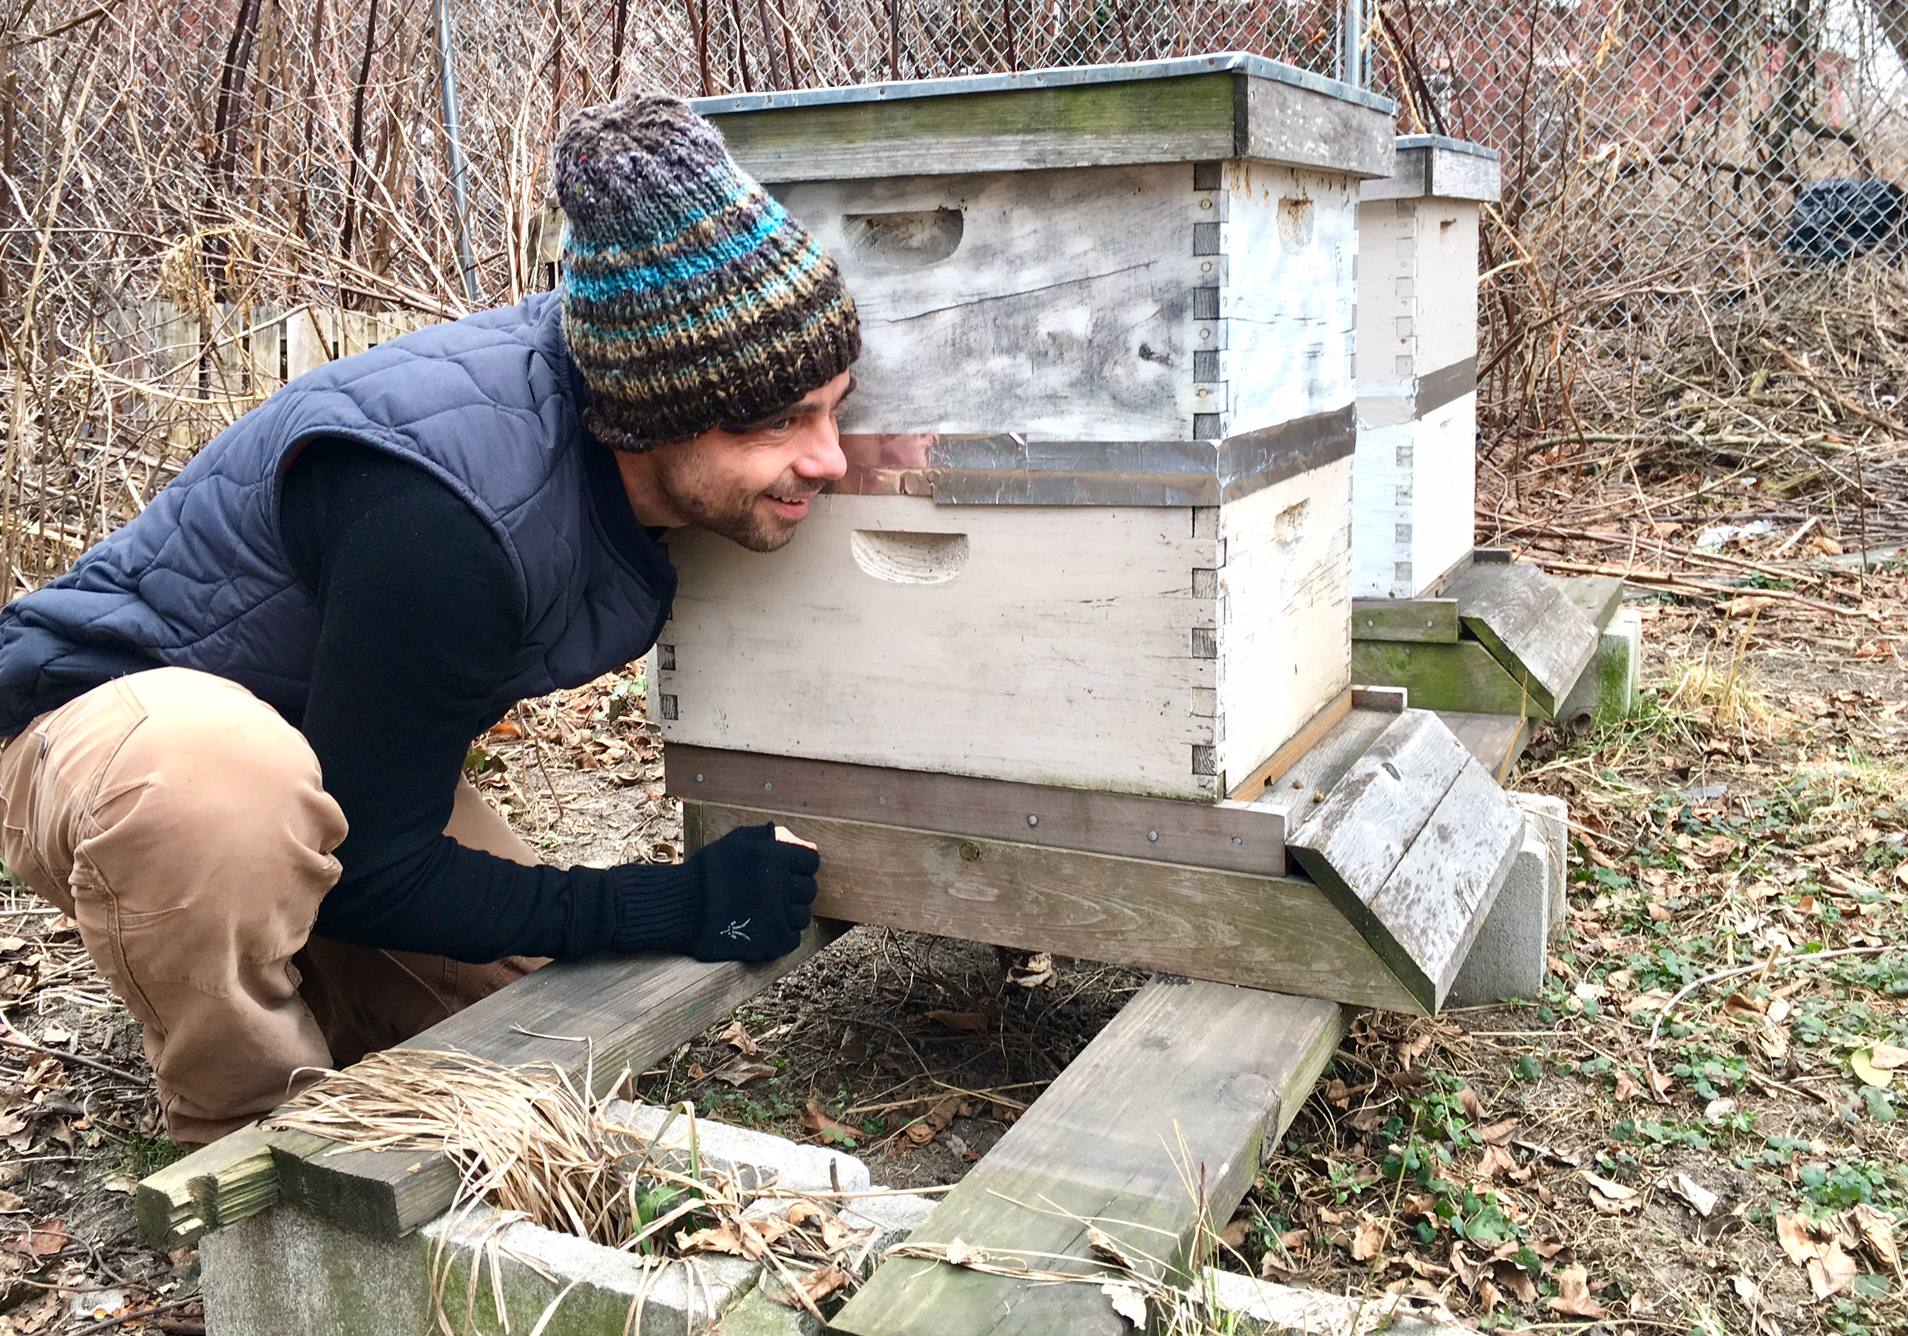 Jonathon ´Farmer Jon´ Compton listens to the honeybees after tapping on the side of the hive he maintains at Camden´s Center for Environmental Transformation.